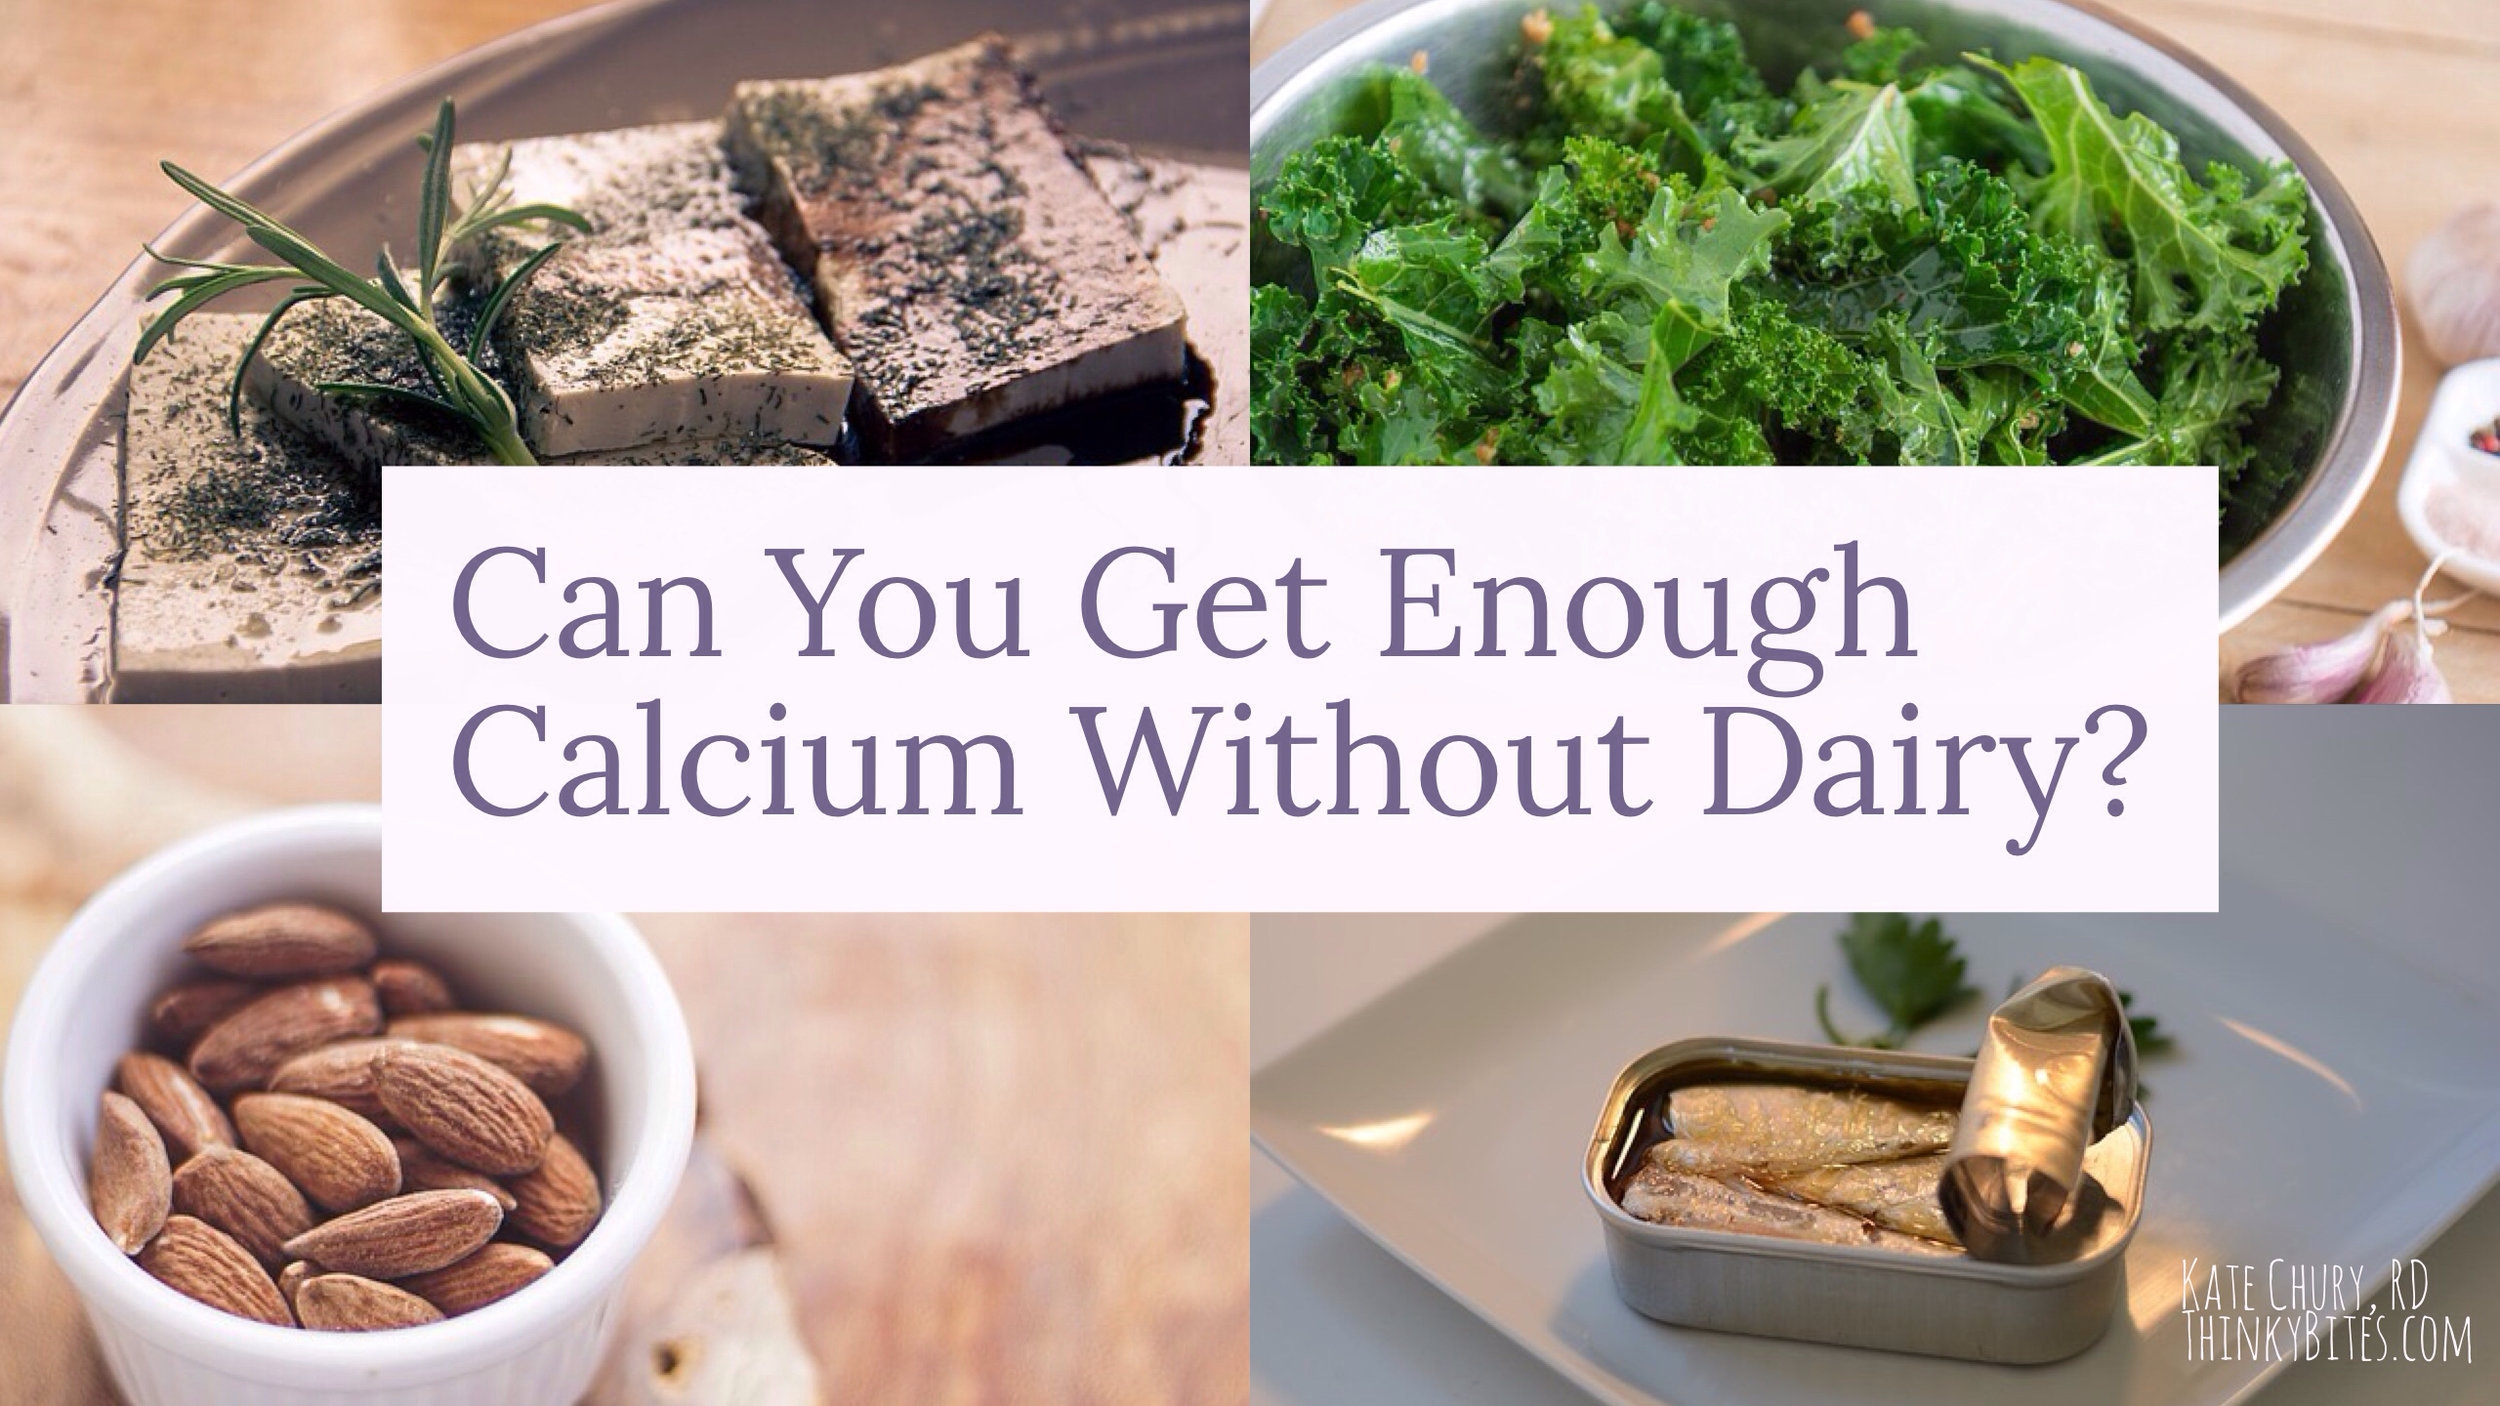 Can You Get Enough Calcium Without Dairy?